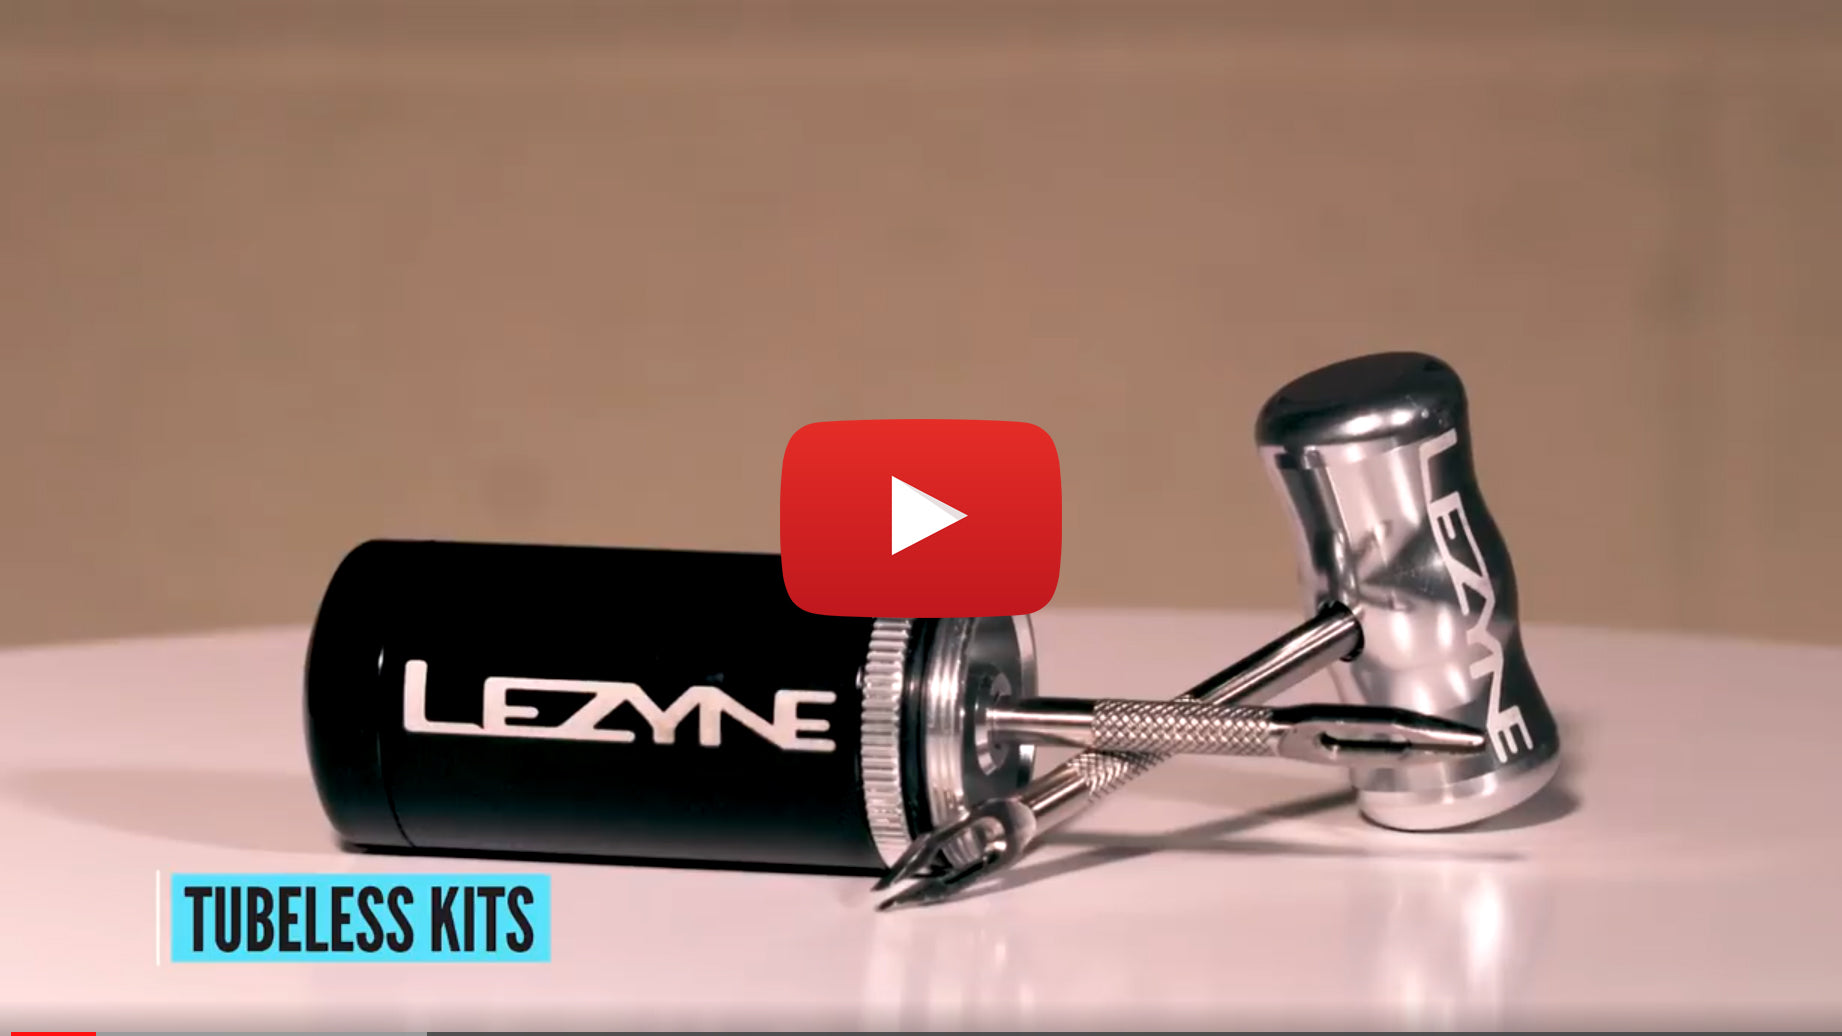 How To Plug A Tubeless Tire - Lezyne Tubeless Kit